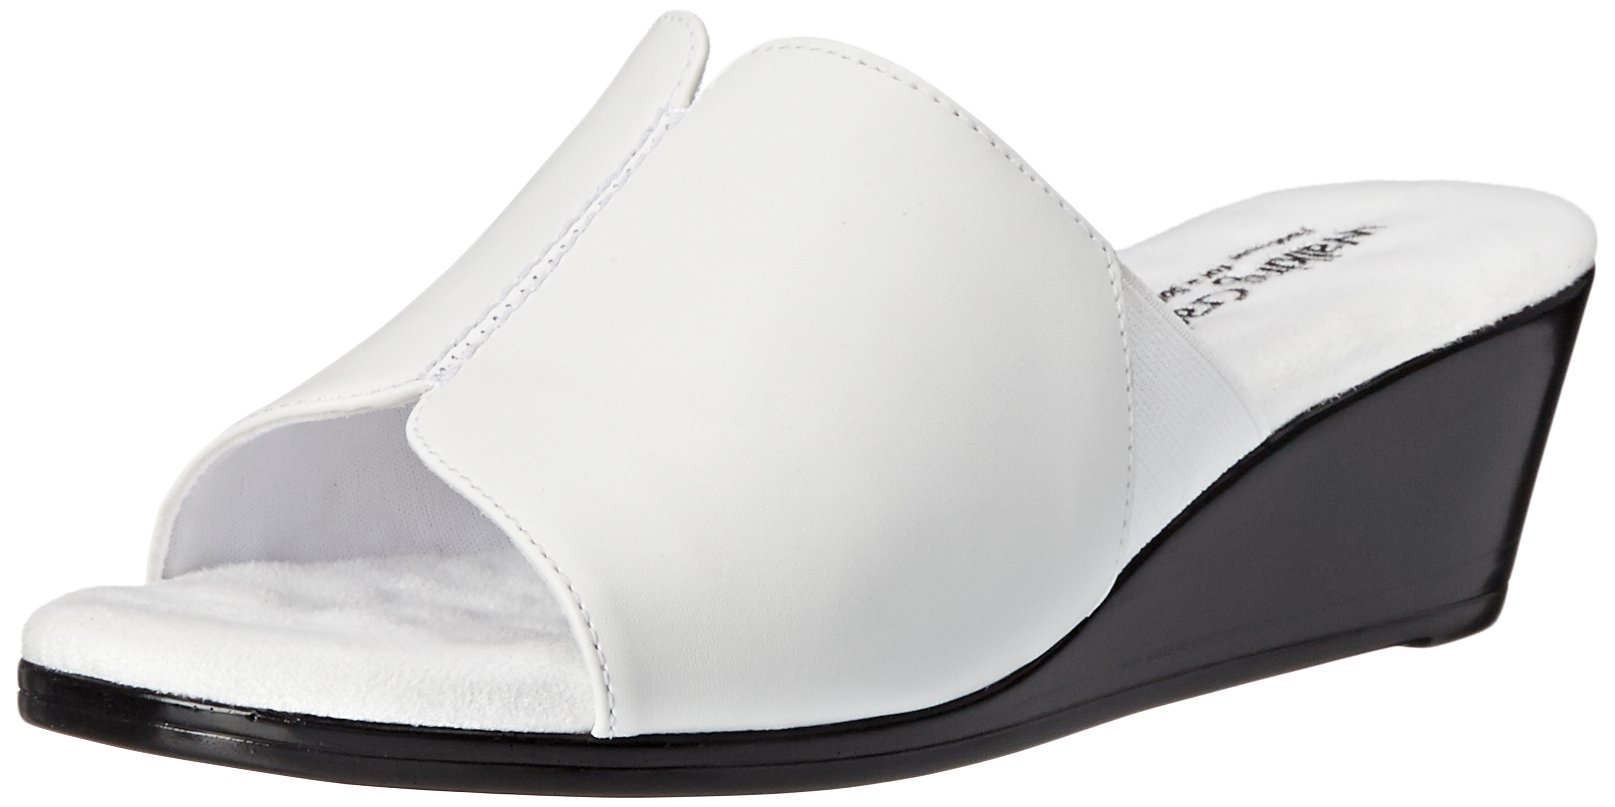 Walking Cradles Women's Nestle Wedge Sandal, 7.5 W US, White Cashmere